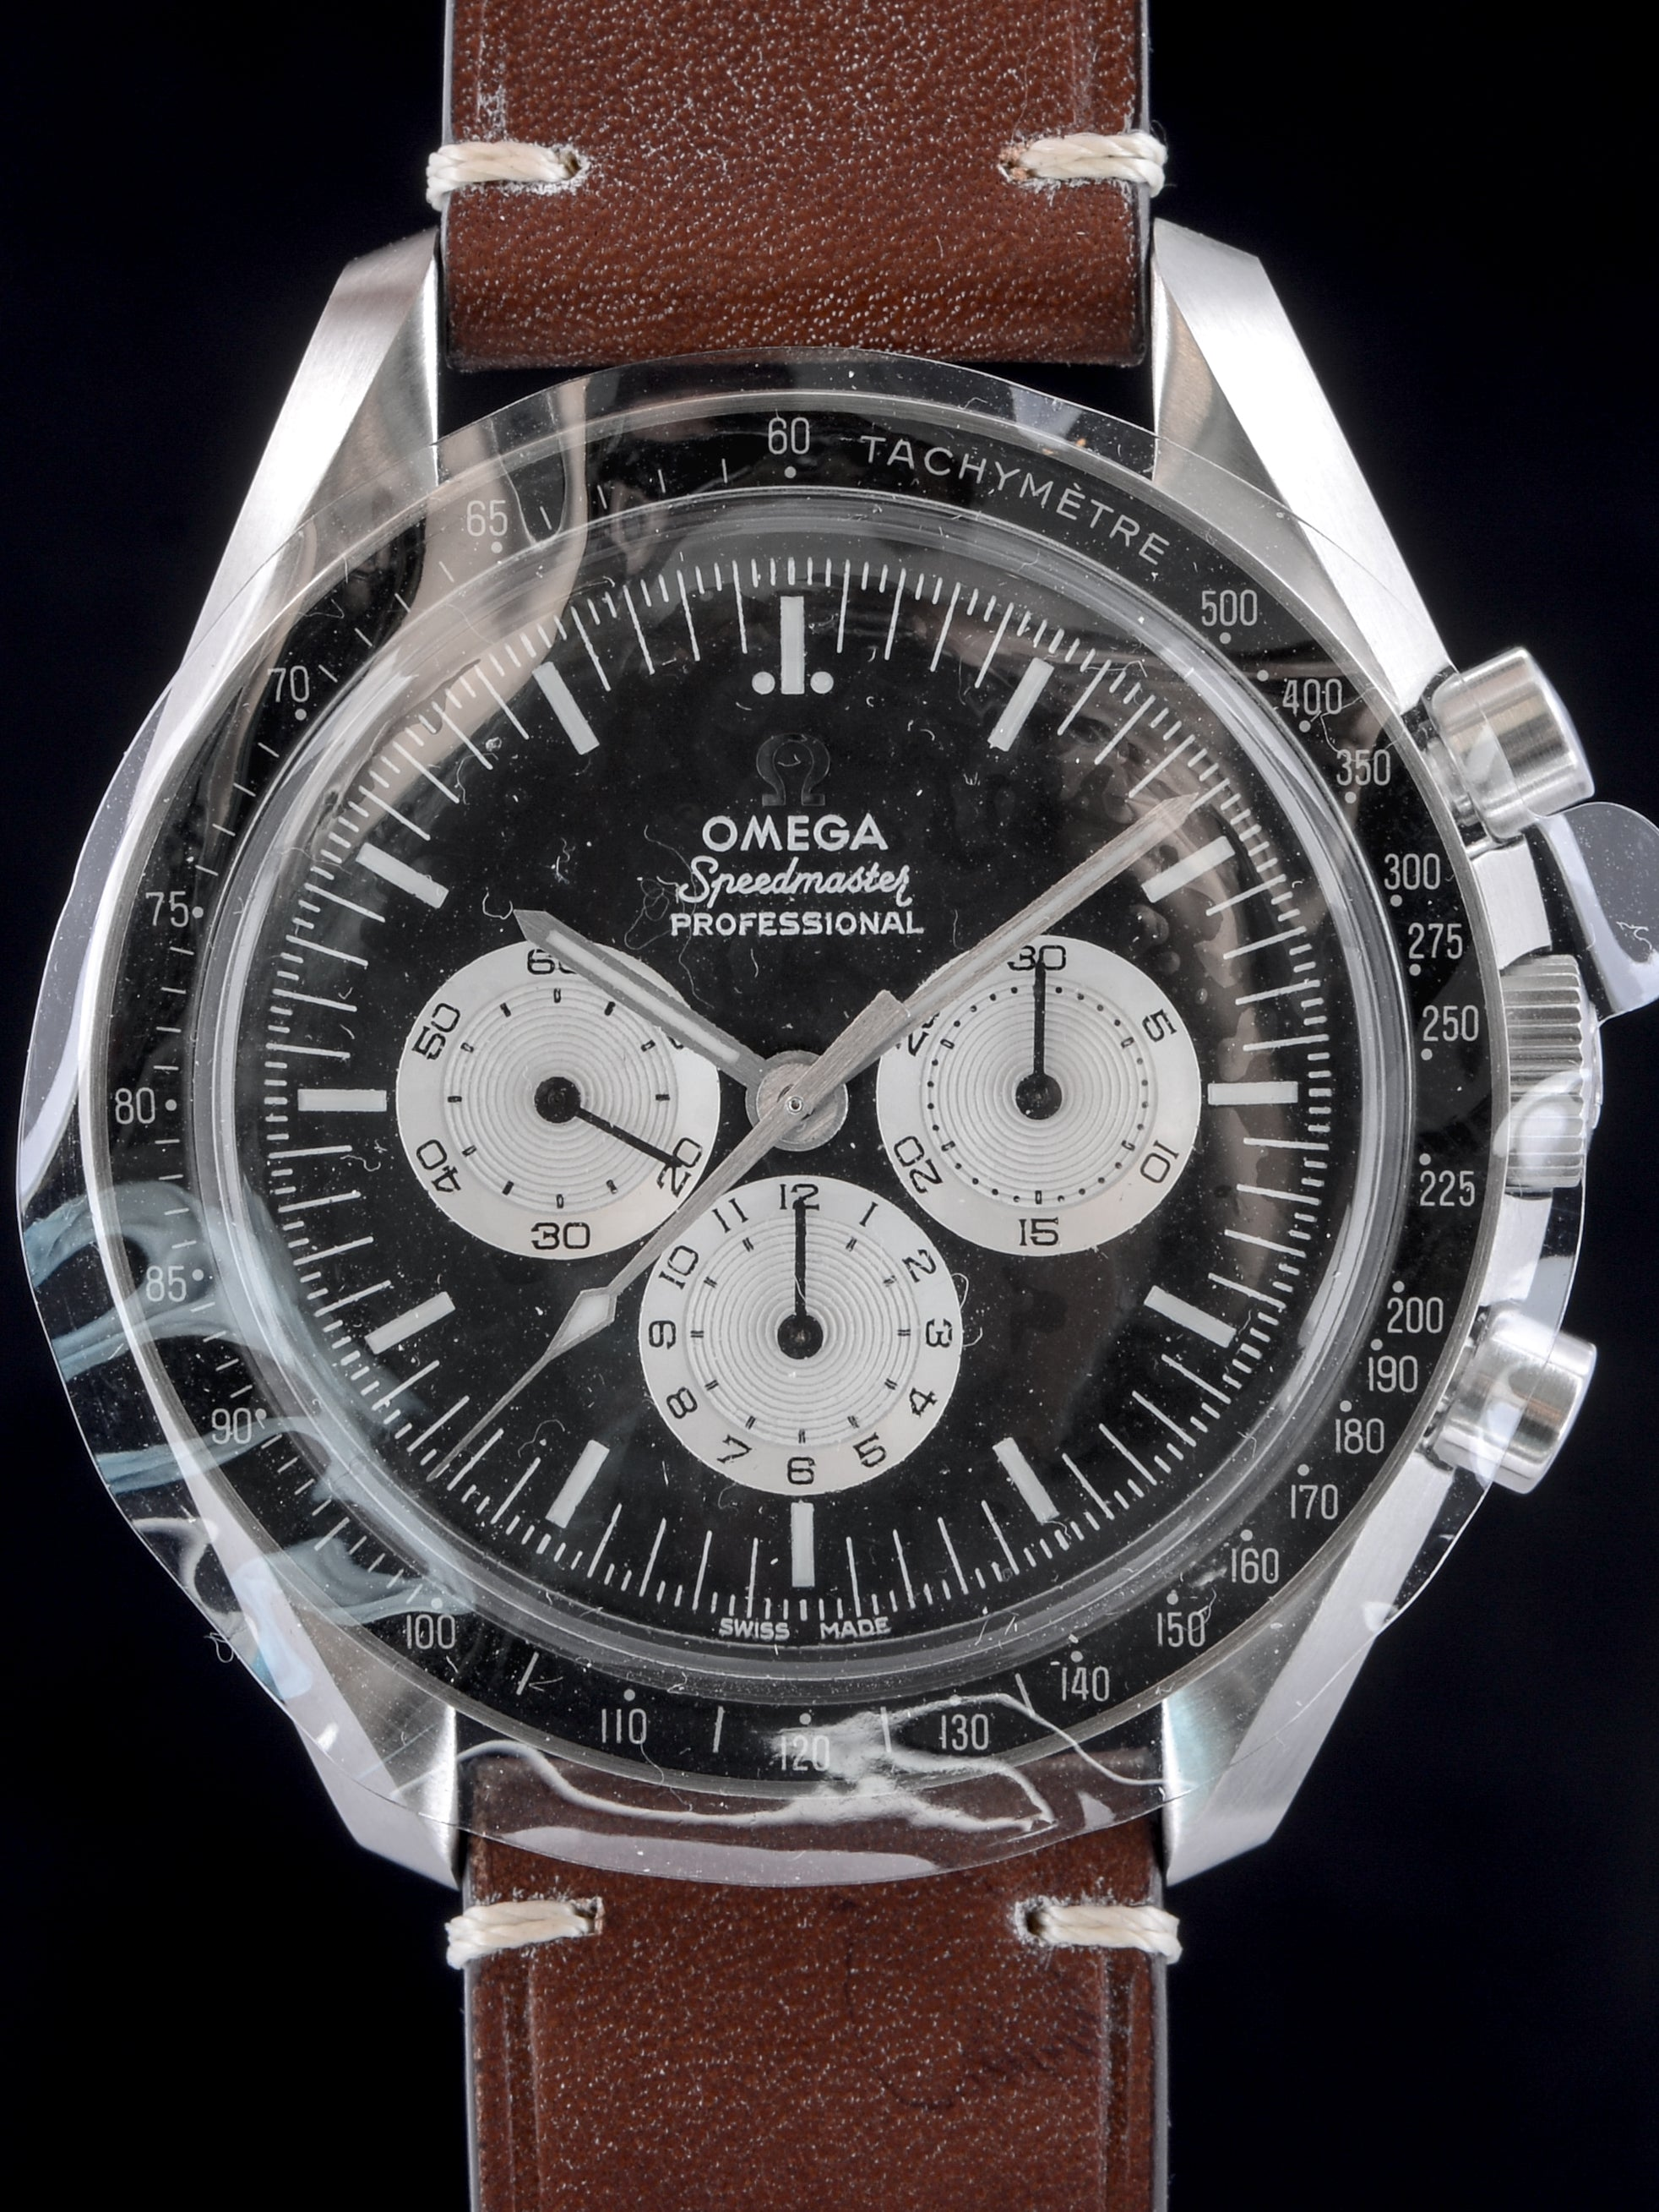 "2017 Omega Speedmaster Professional Ref. 311.32.42.30.01.001 ""Speedy Tuesday"""